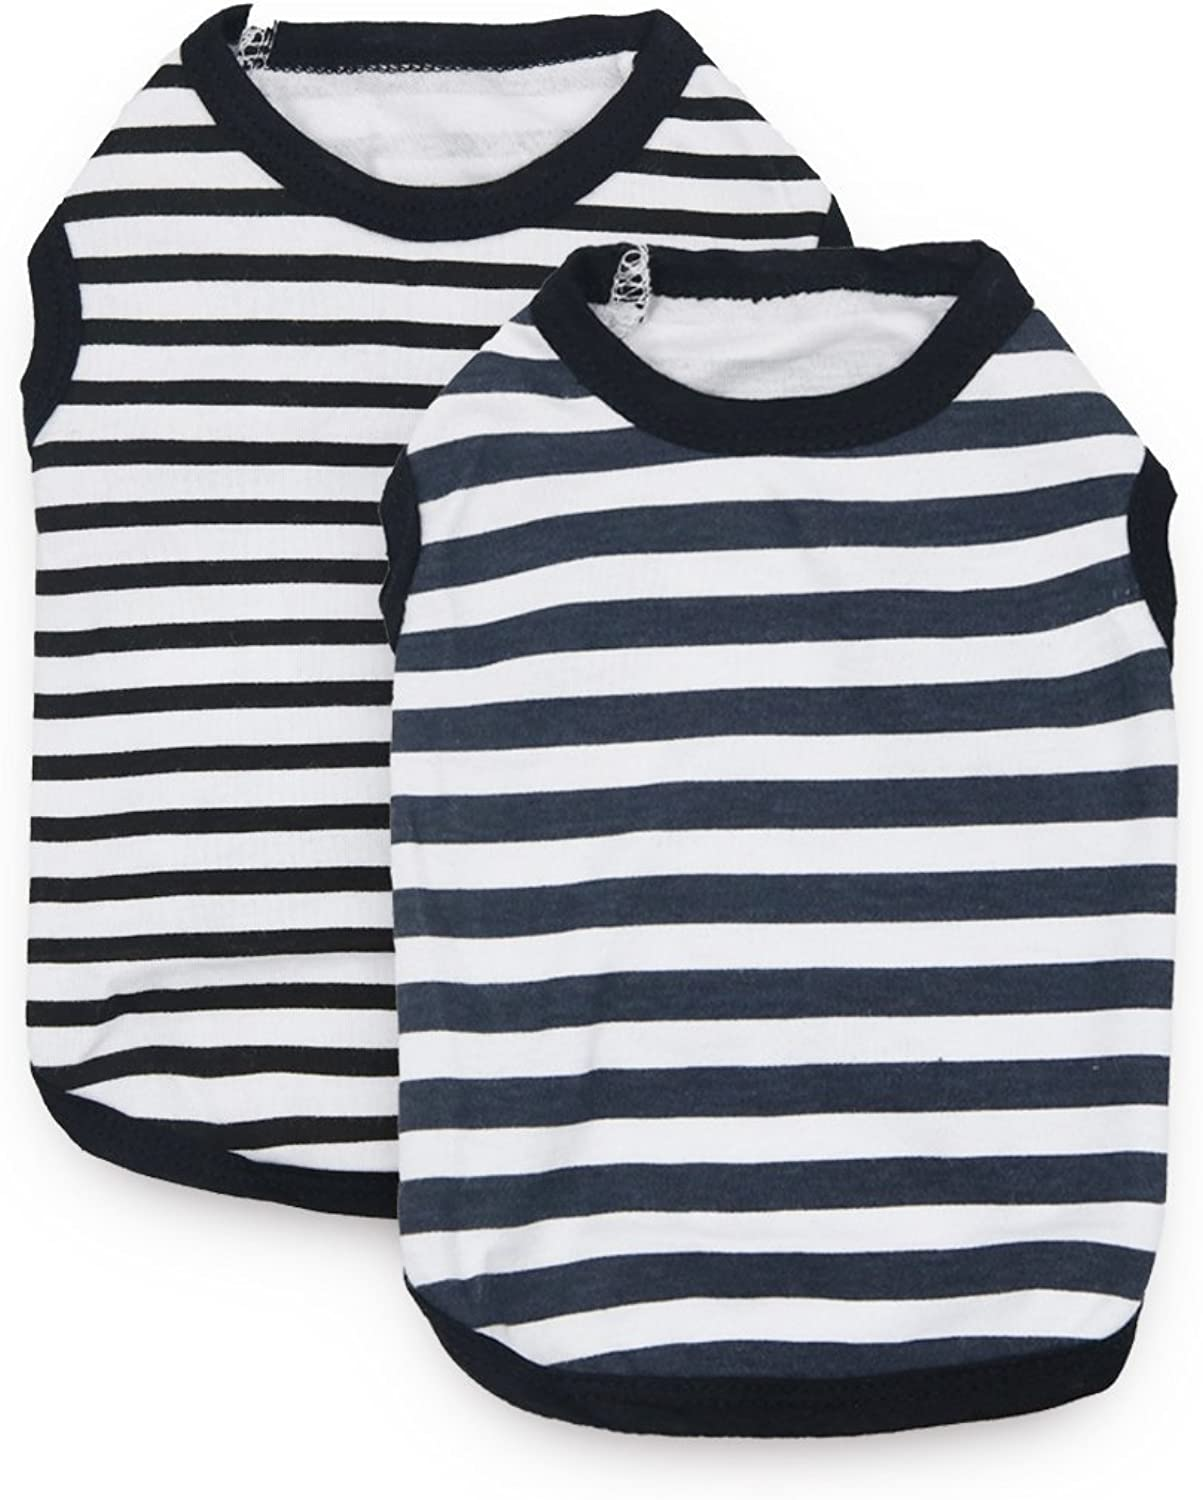 DroolingDog Dog Striped Shirts Dog Cotton Clothes Pet Vest Puppy Apparel T Shirt Small Dogs, XS, Pack of 2